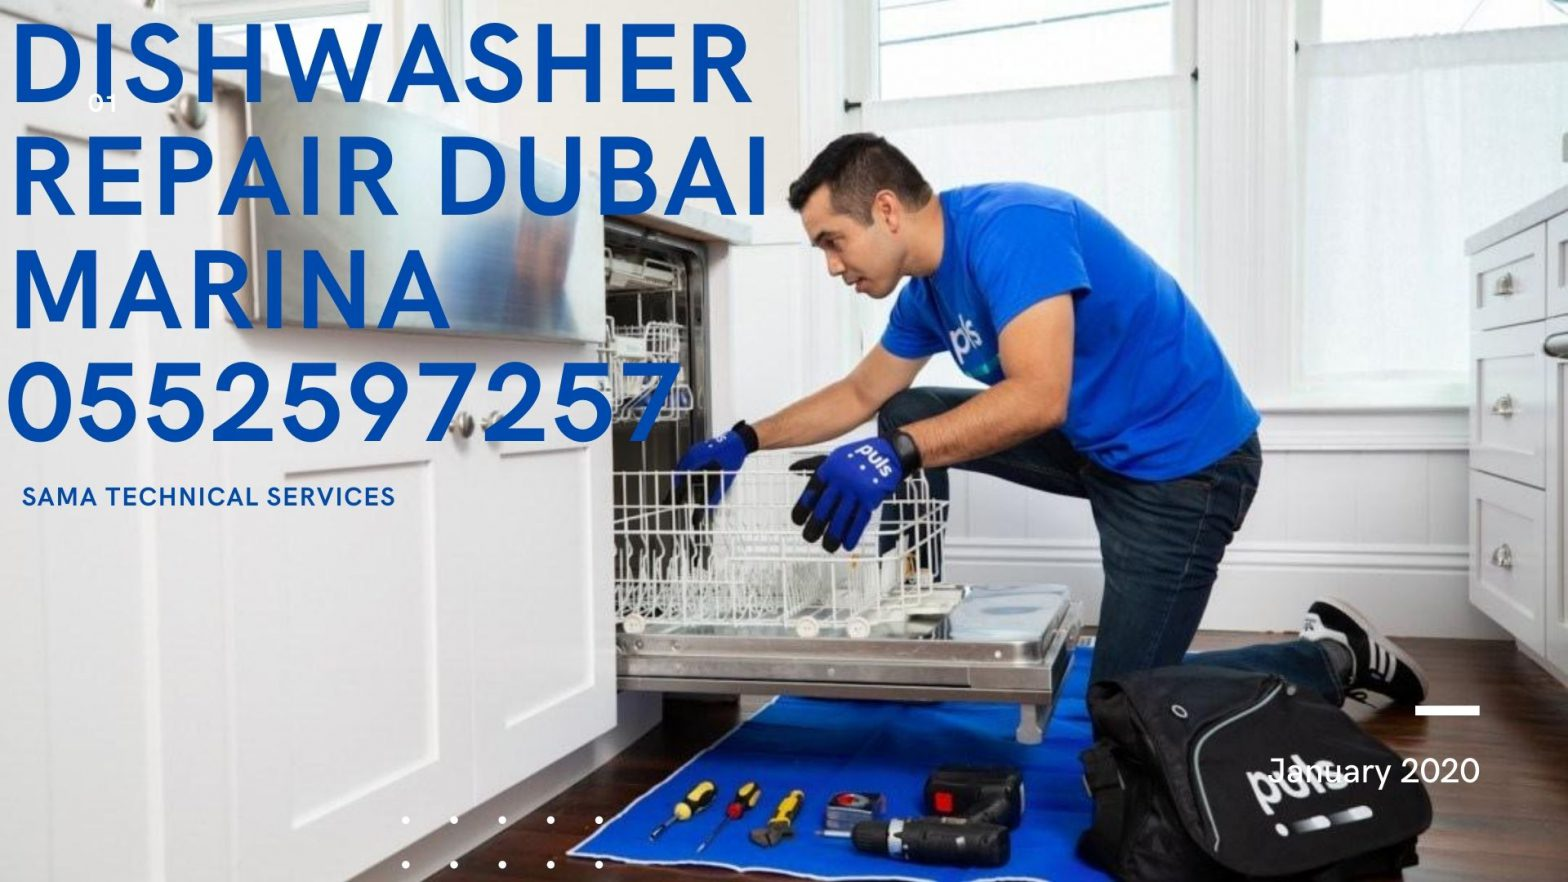 Dishwasher repair Dubai Marina